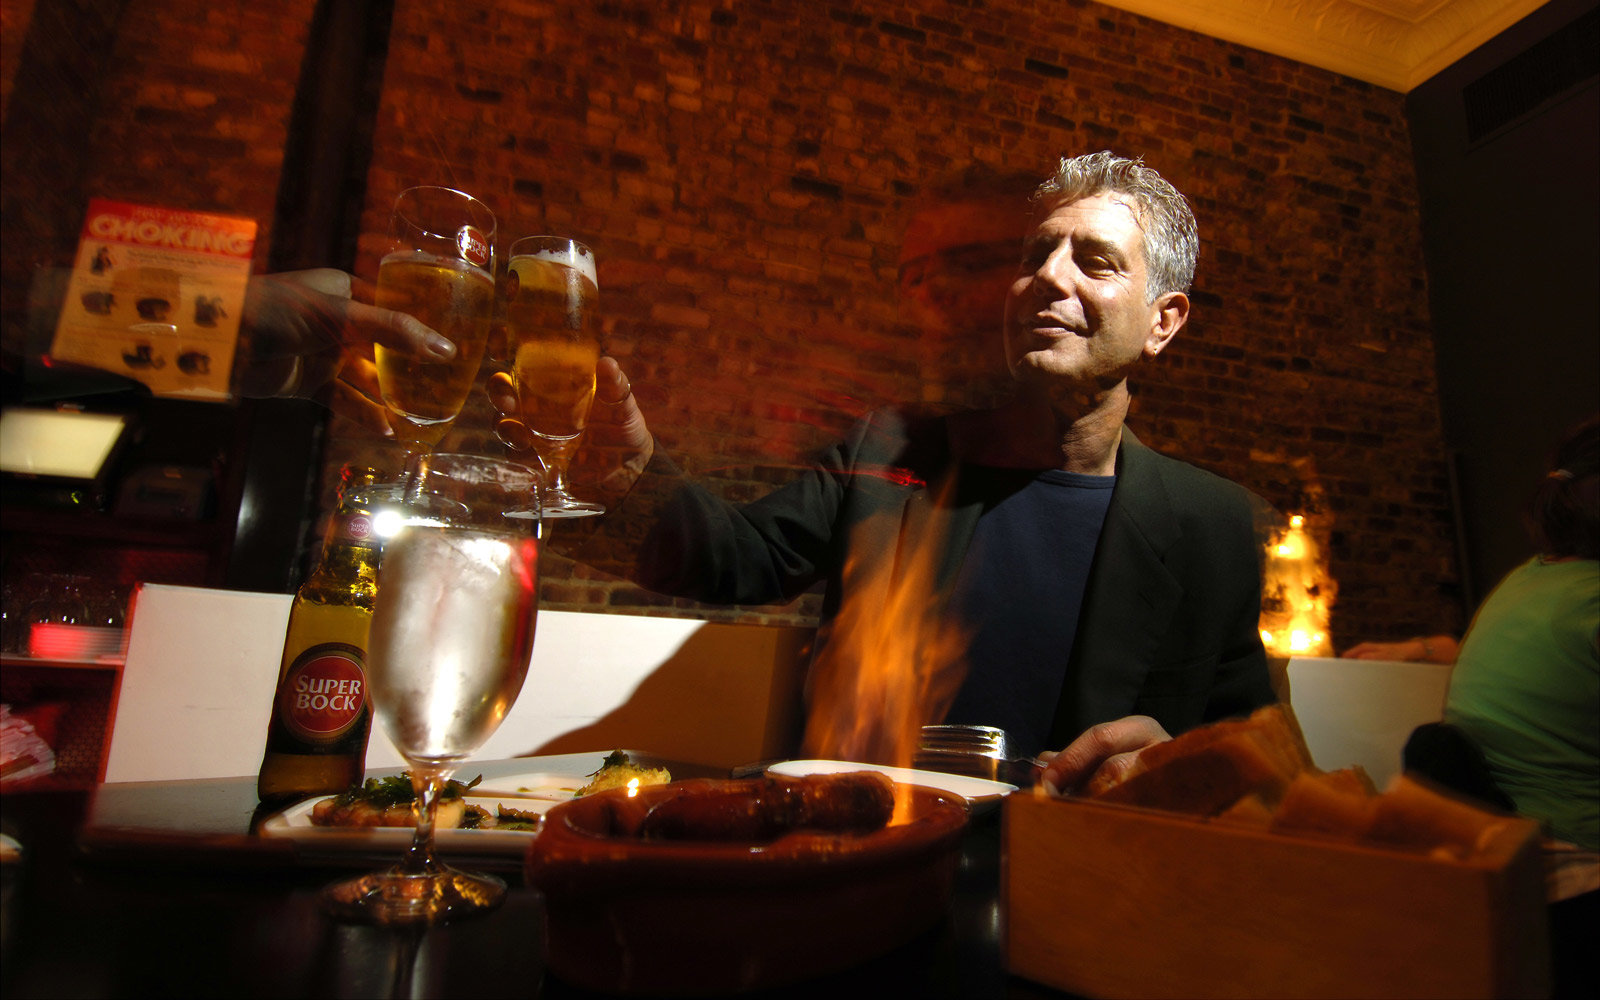 Chef Anthony Bourdain has a drink at Tintol restaurant in Ti